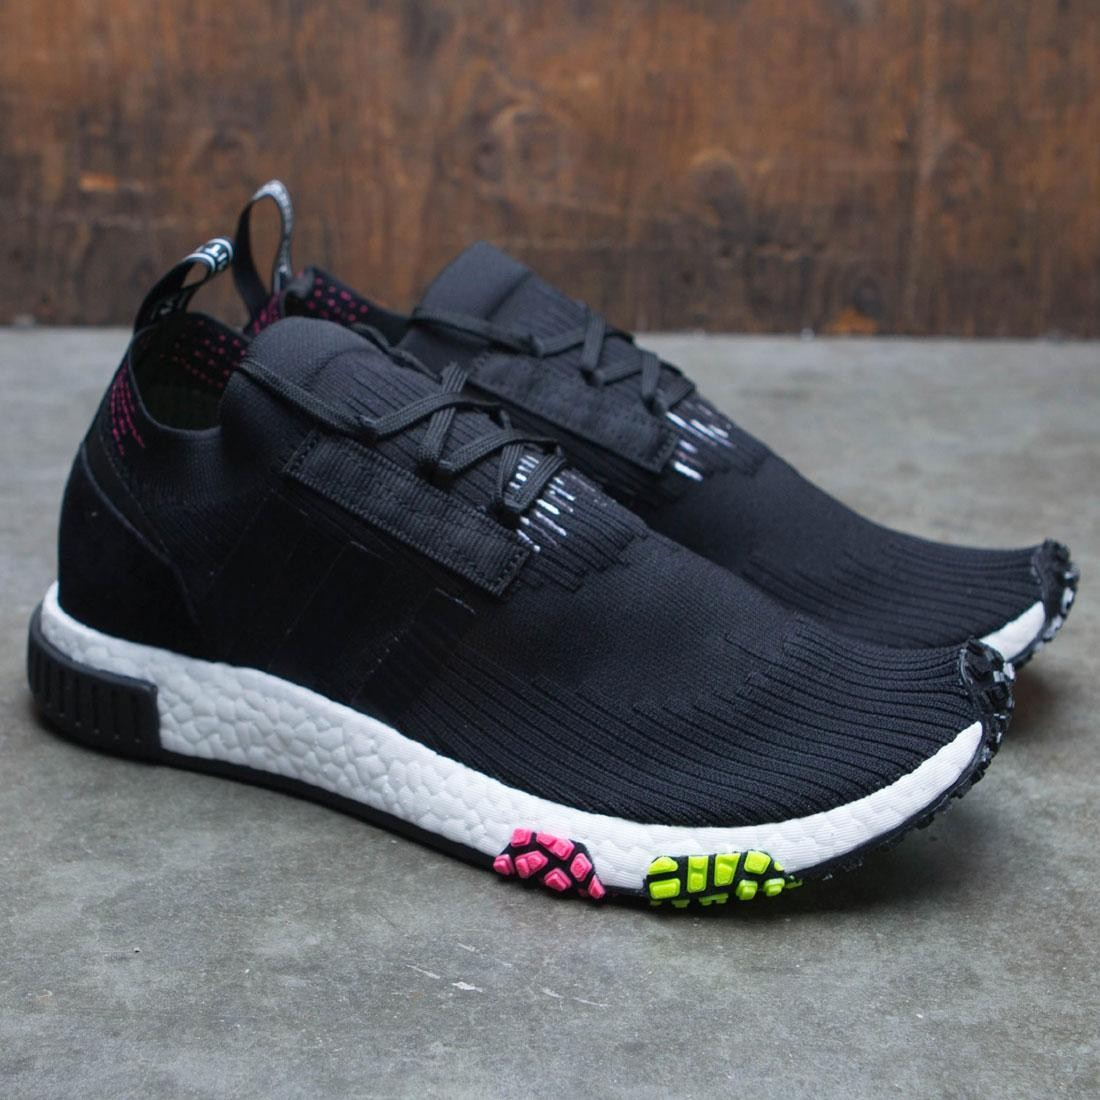 sale official sale discount Adidas Men's NMD_Racer Primeknit... amazon cheap price wholesale price sale online free shipping manchester great sale VKkpPdvMmA